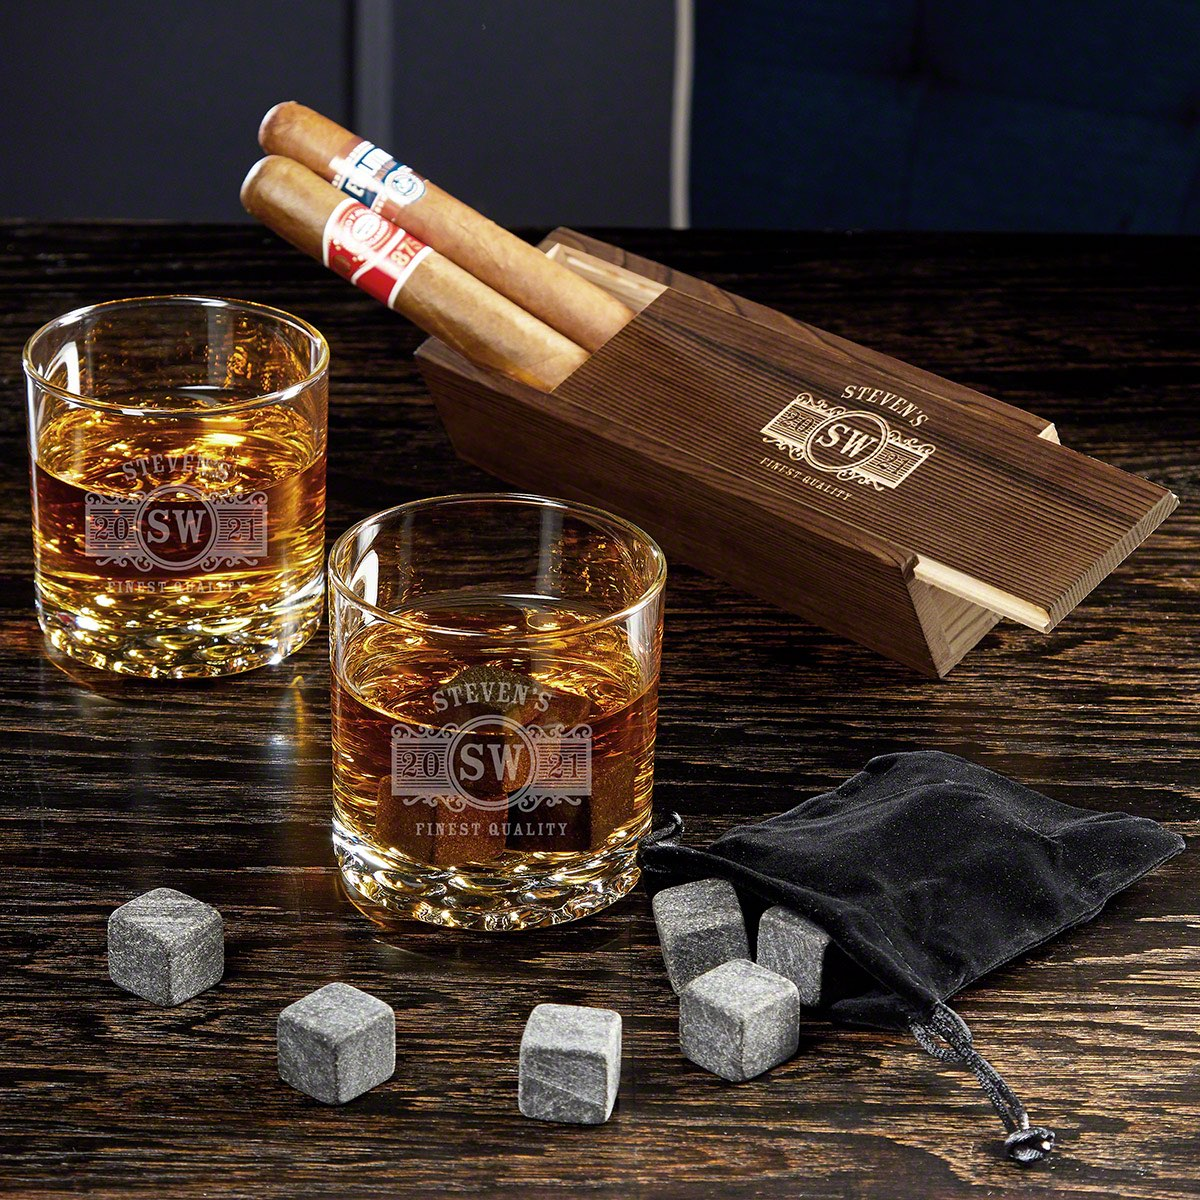 Marquee Custom Cigar and Bourbon Glass Set with Buckman Glasses